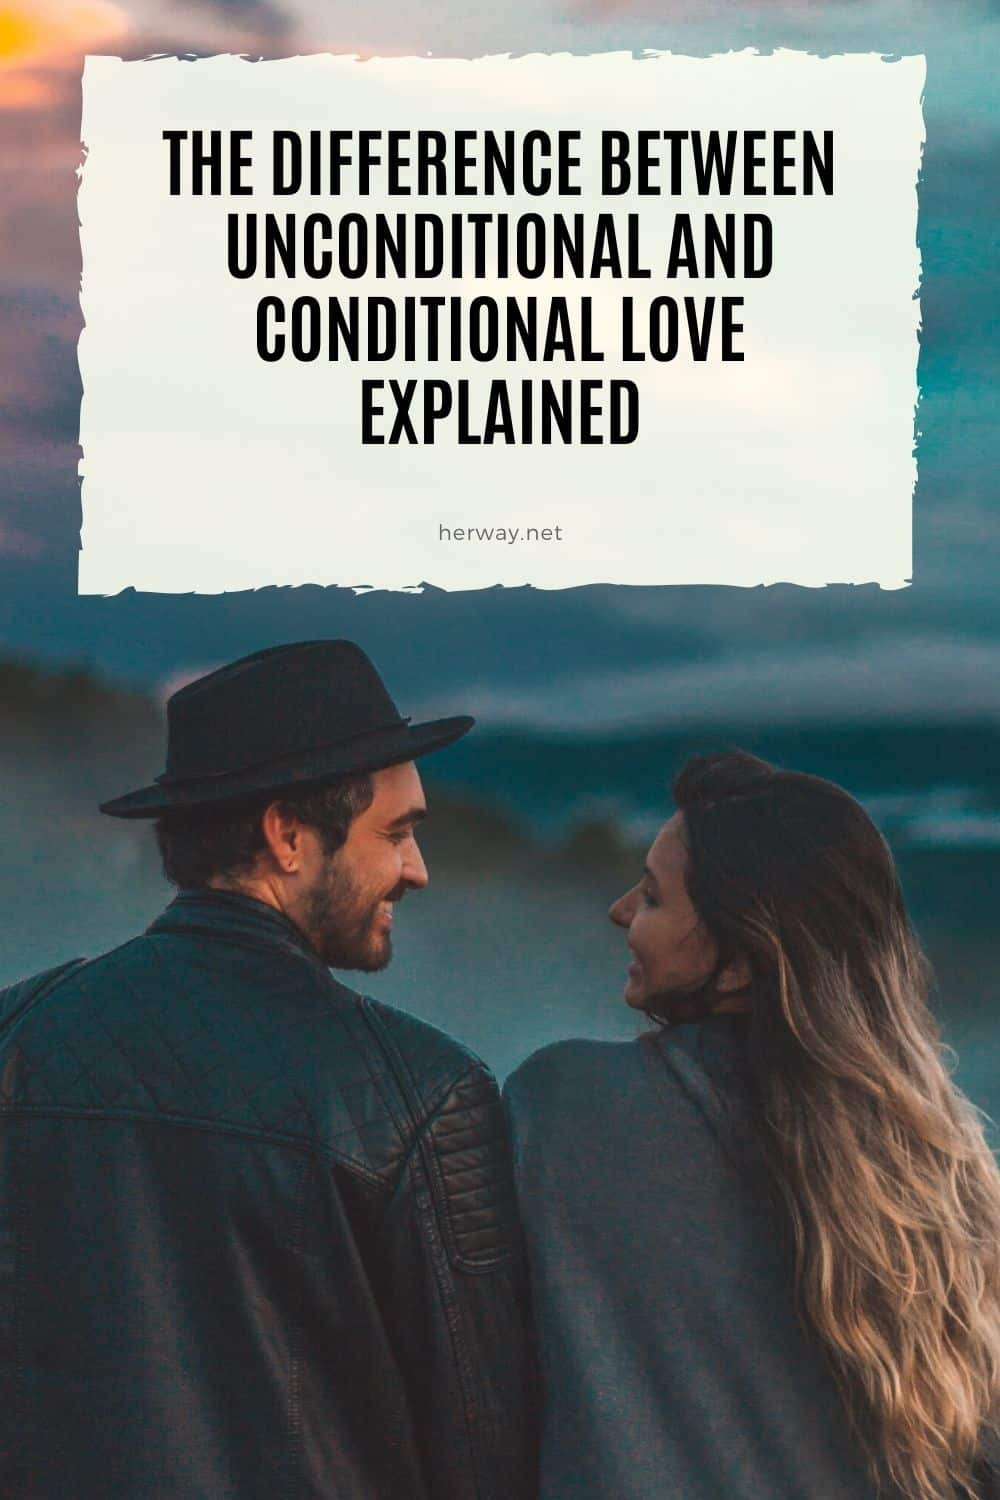 The Difference Between Unconditional And Conditional Love Explained